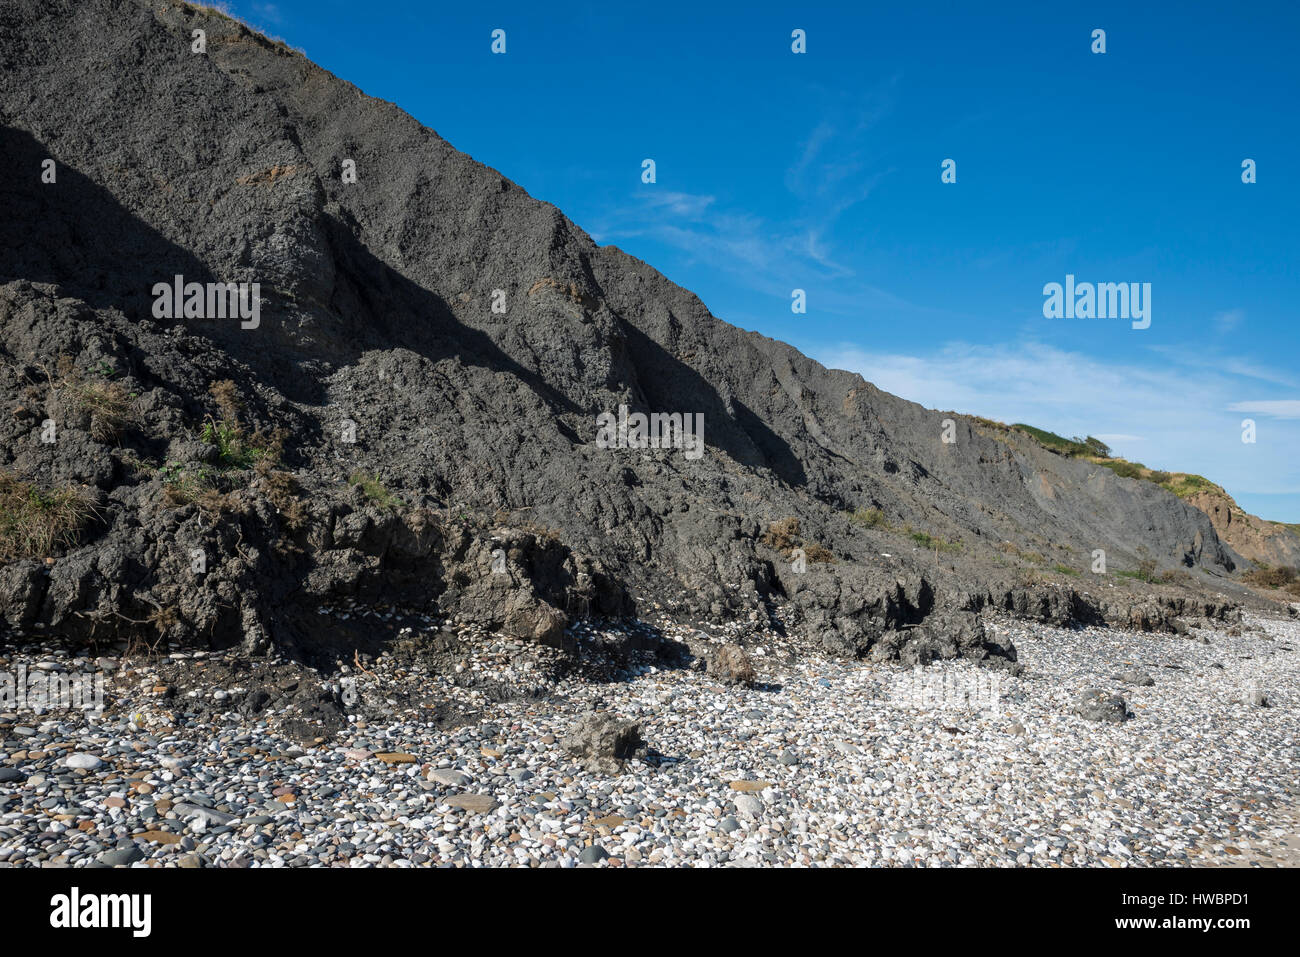 Speeton clay at Filey bay. An area well known for its fossil finds on the coast of North Yorkshire. Stock Photo